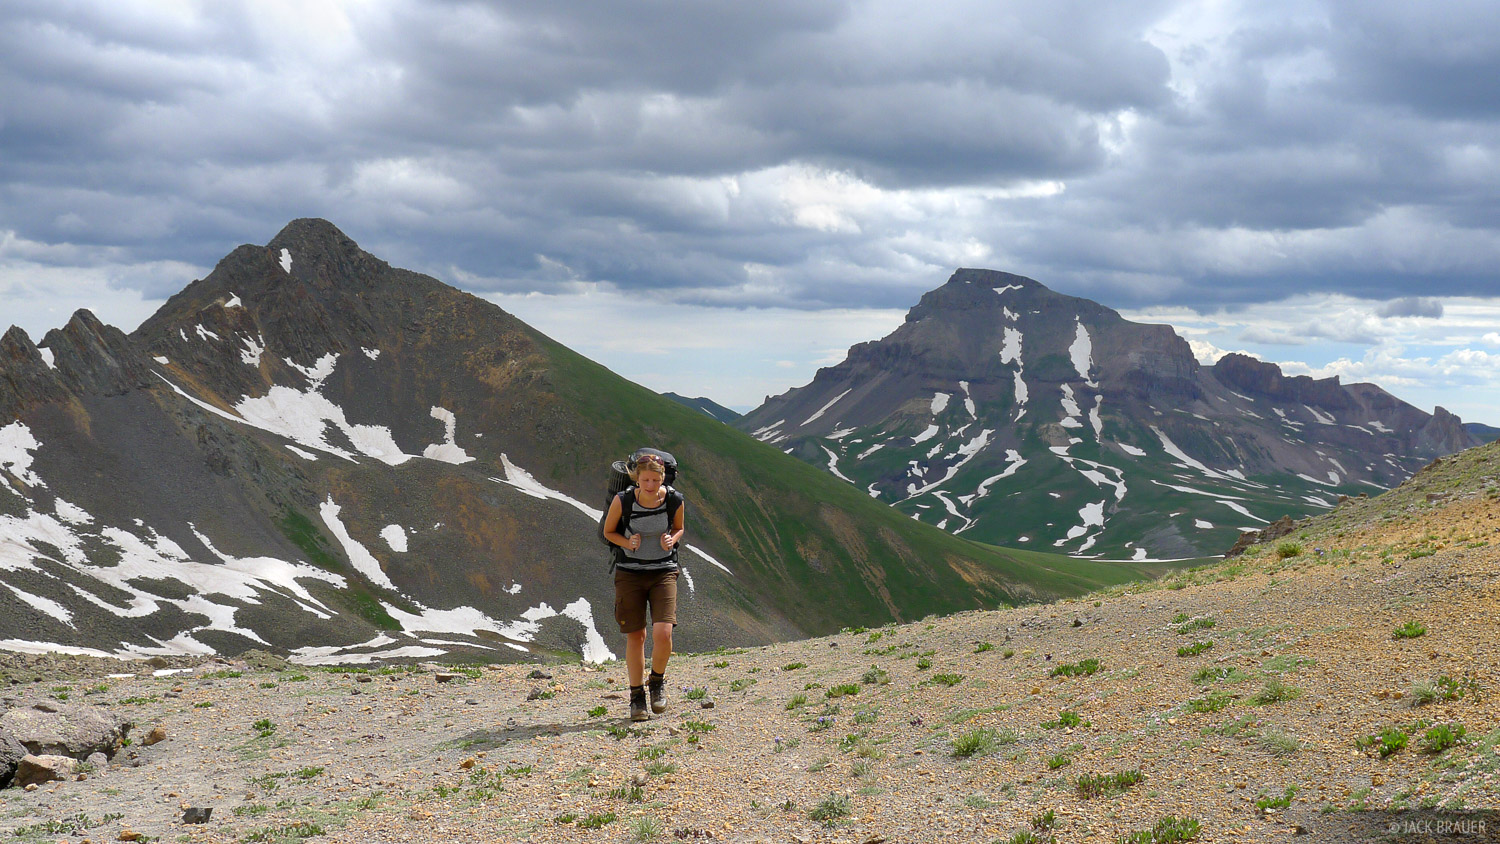 hiking, Uncompahgre Peak, San Juan Mountains, Colorado, photo